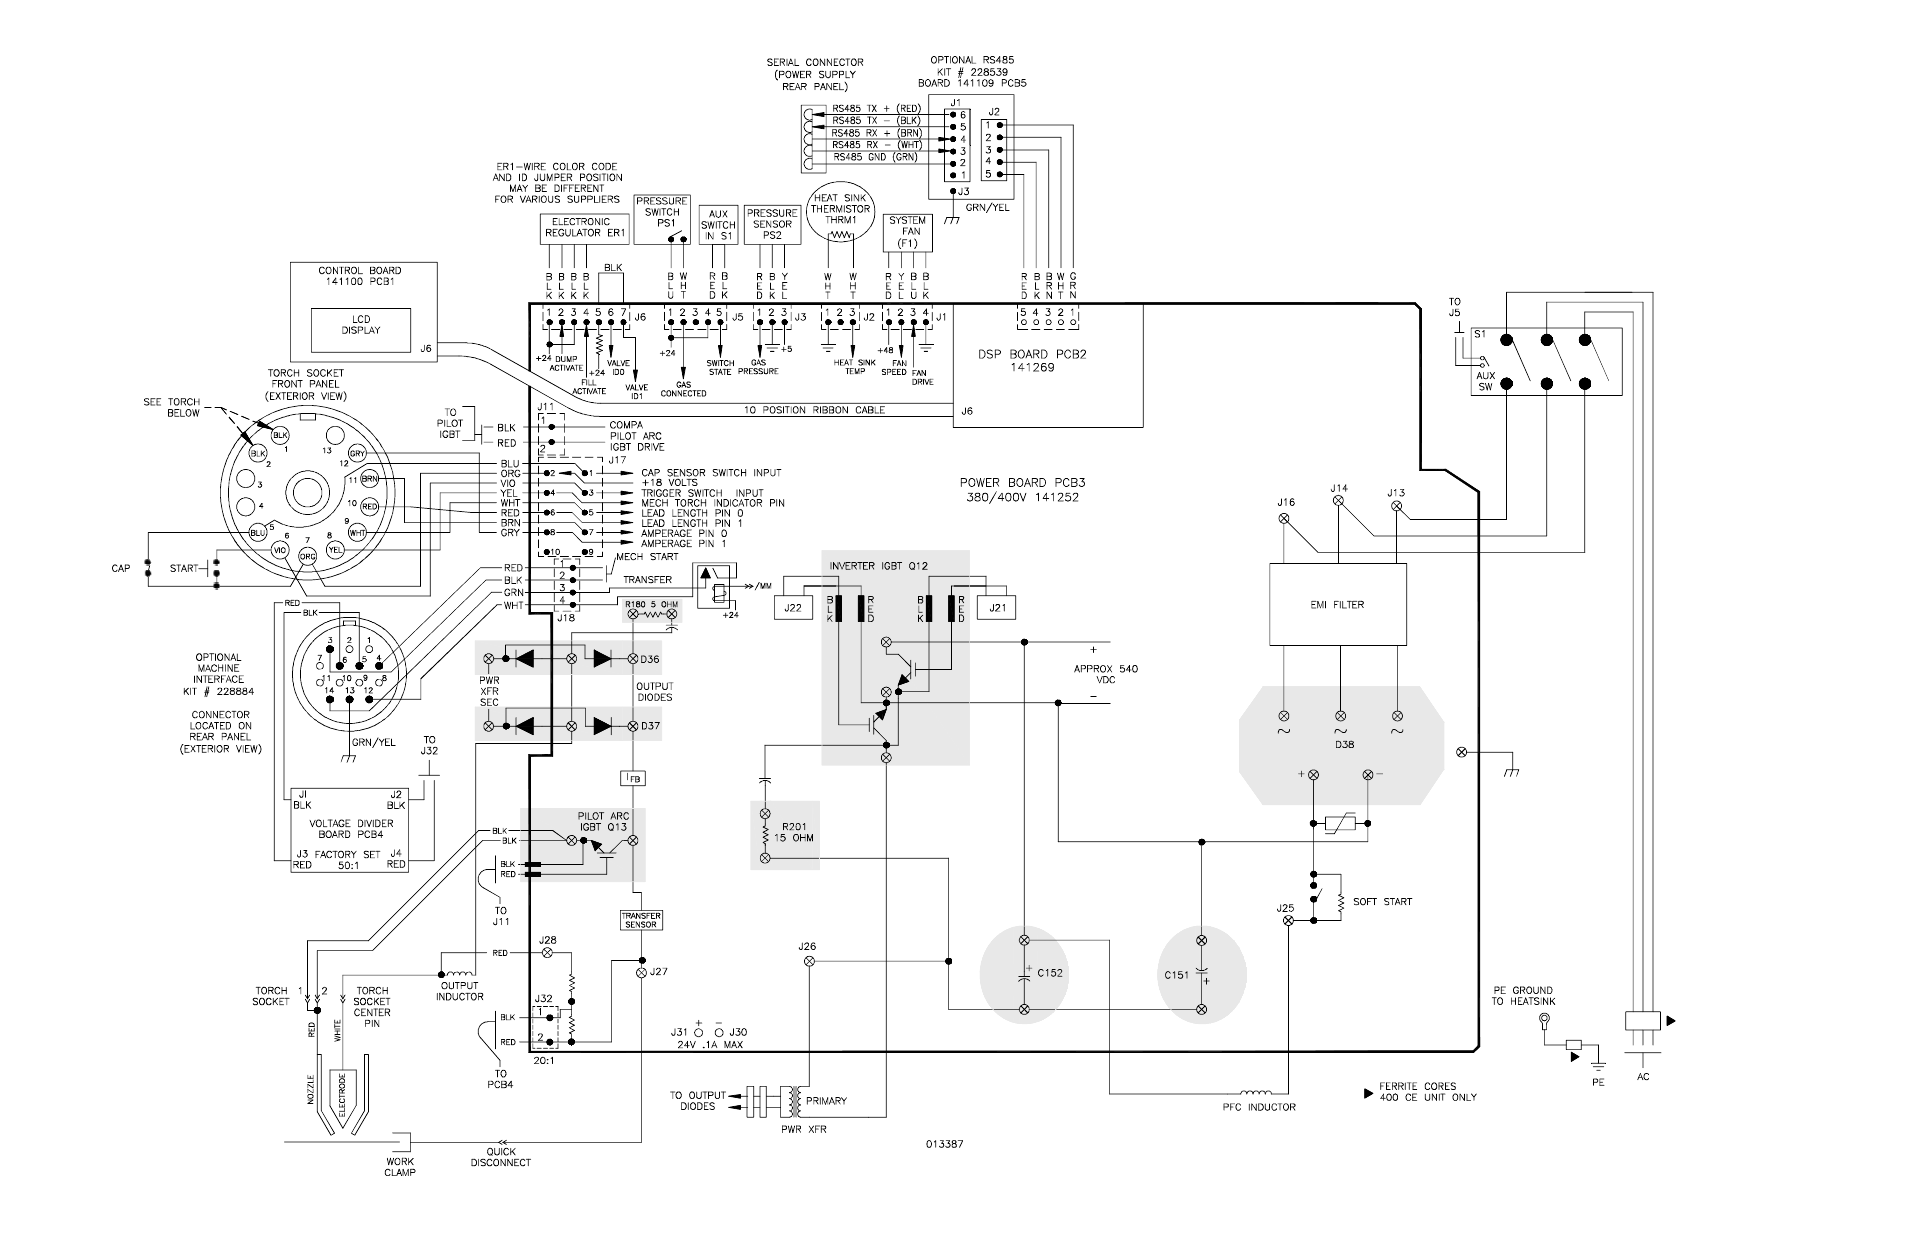 Schematic Diagram 380 V Ccc 400 V Ce Schematic Diagram